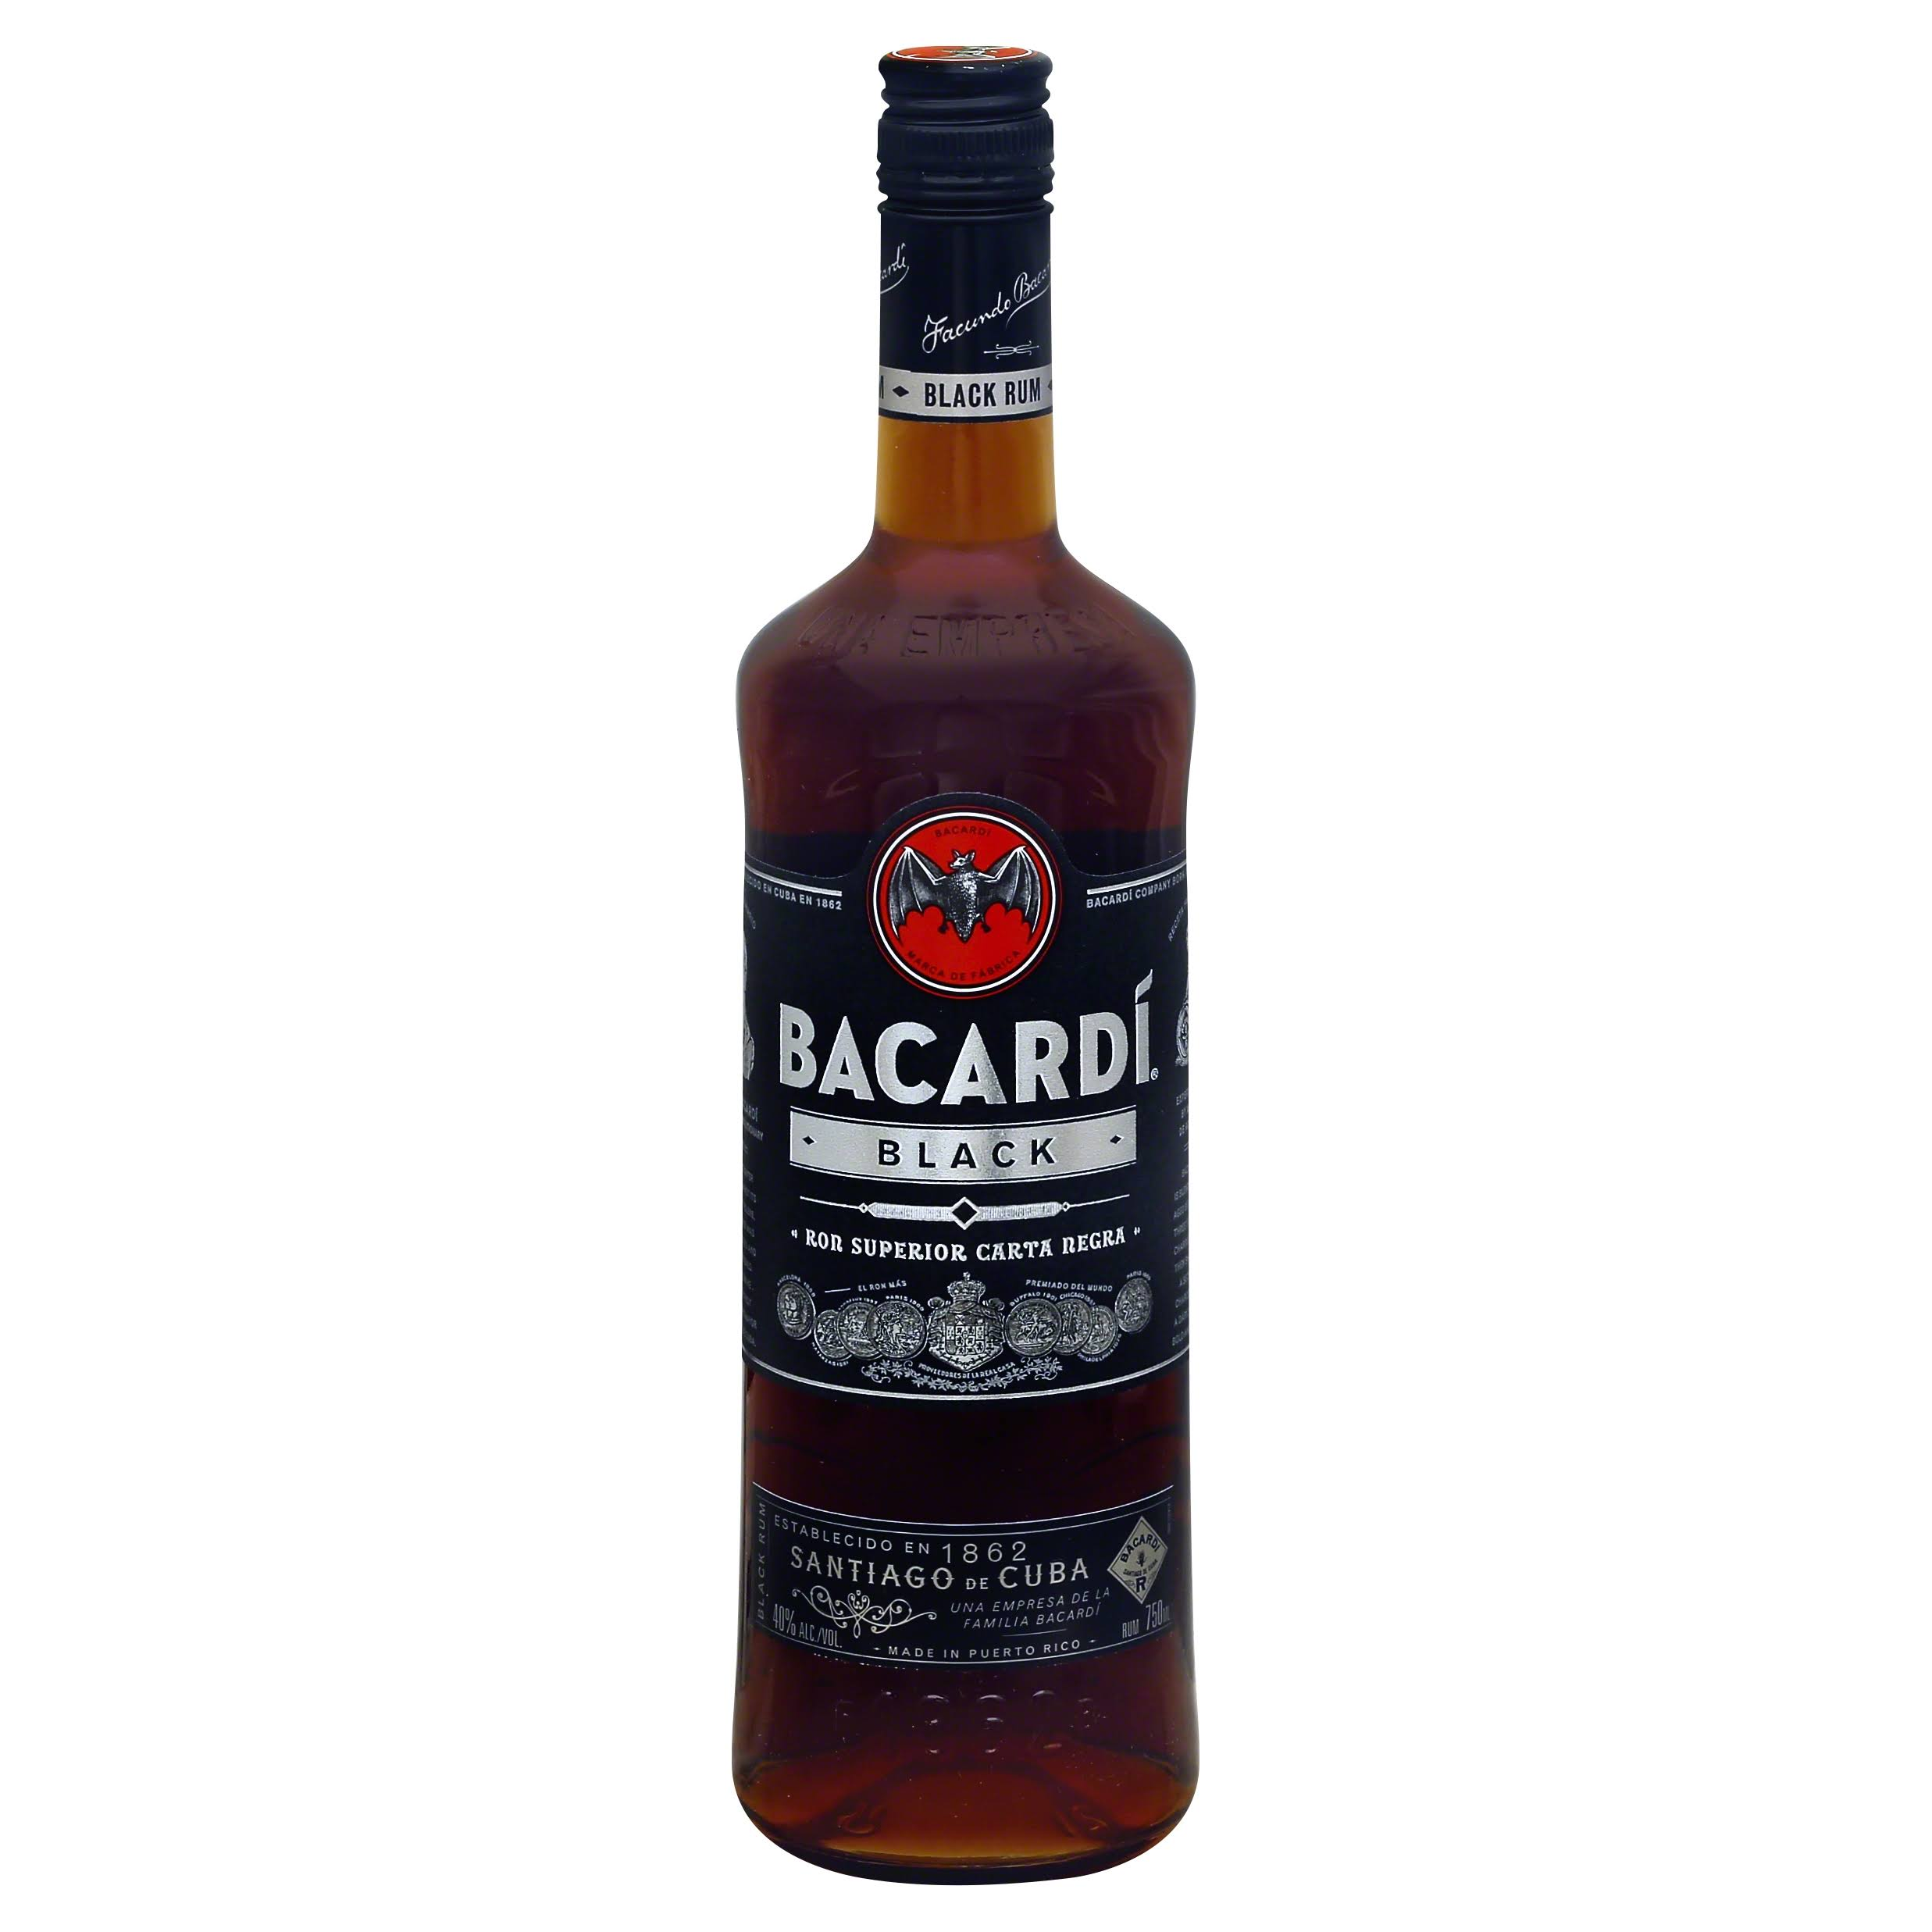 Bacardi Rum, Black - 750 ml